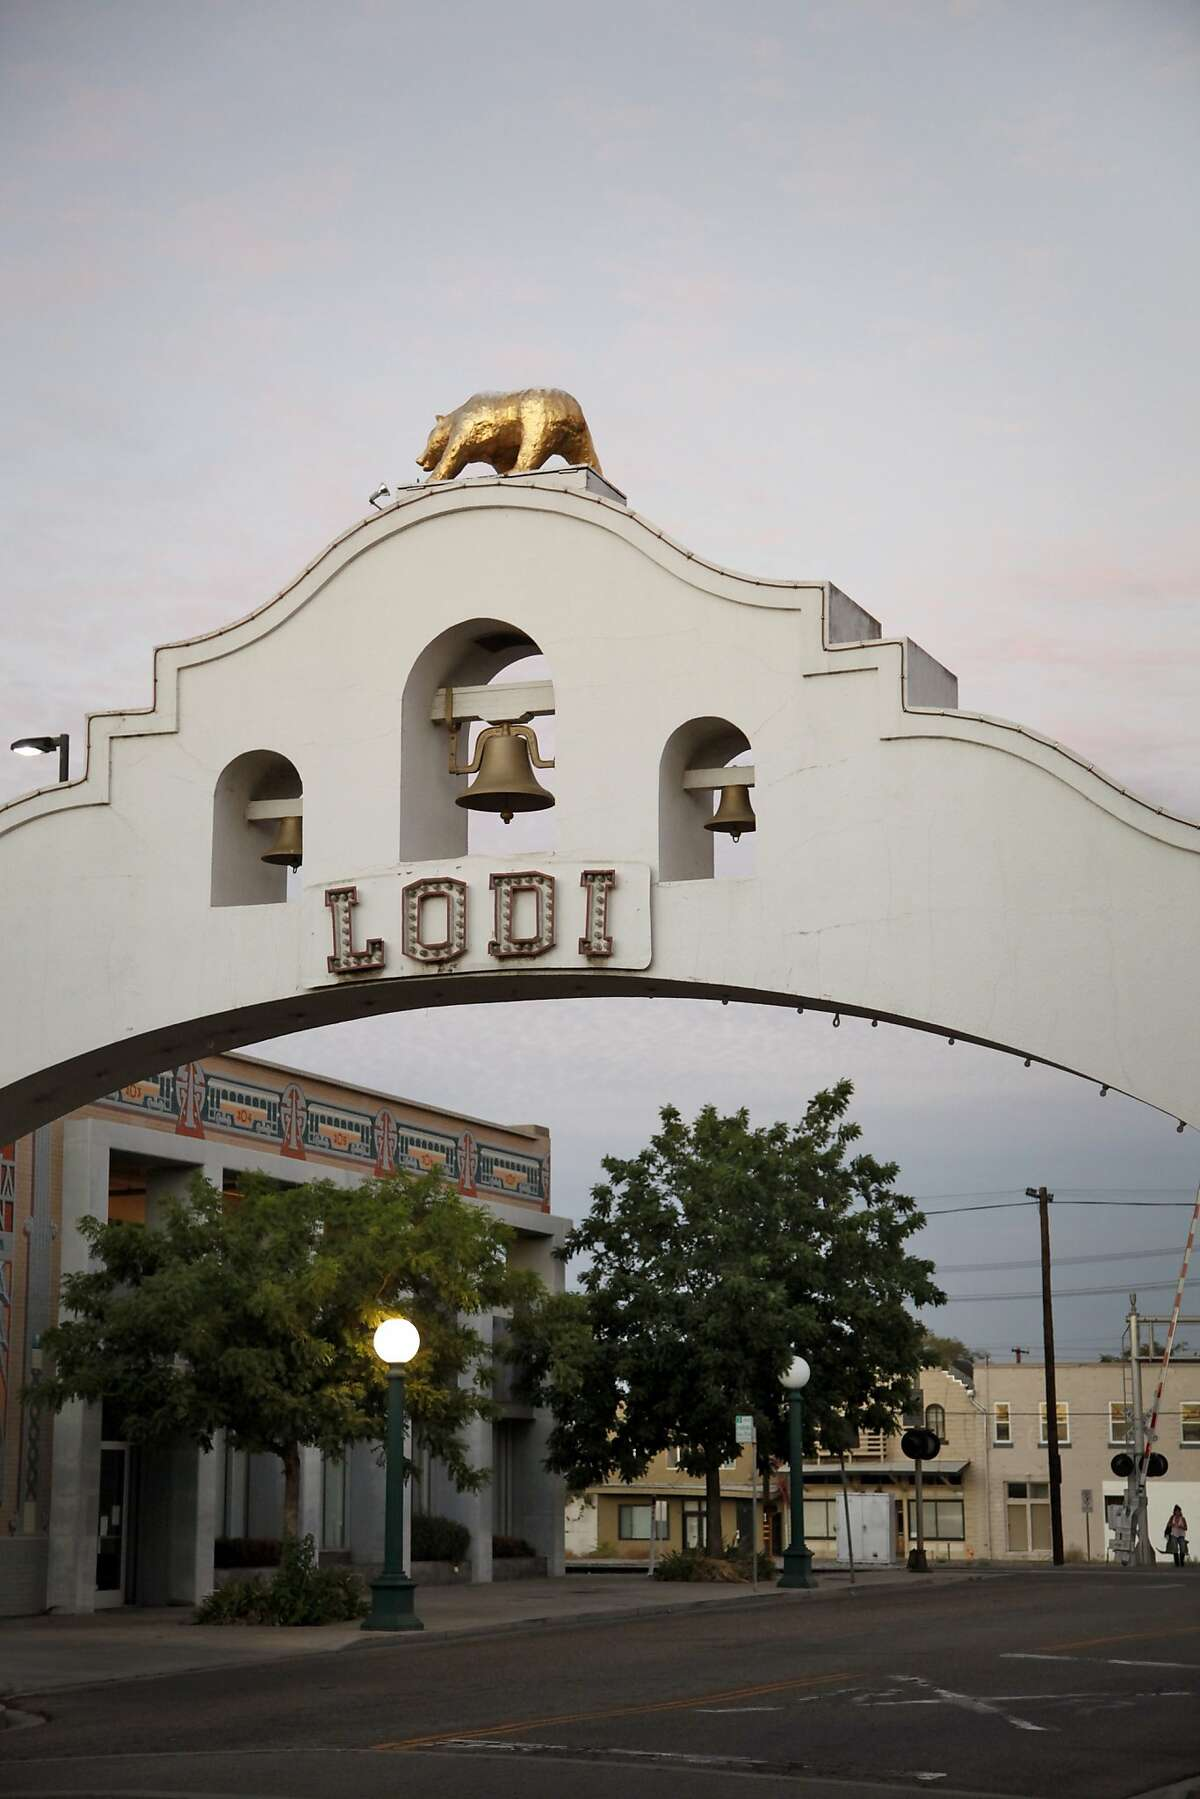 The historic Lodi Arch downtown was built in 1907. Lodi, Calif., on Wednesday, August 19, 2015.